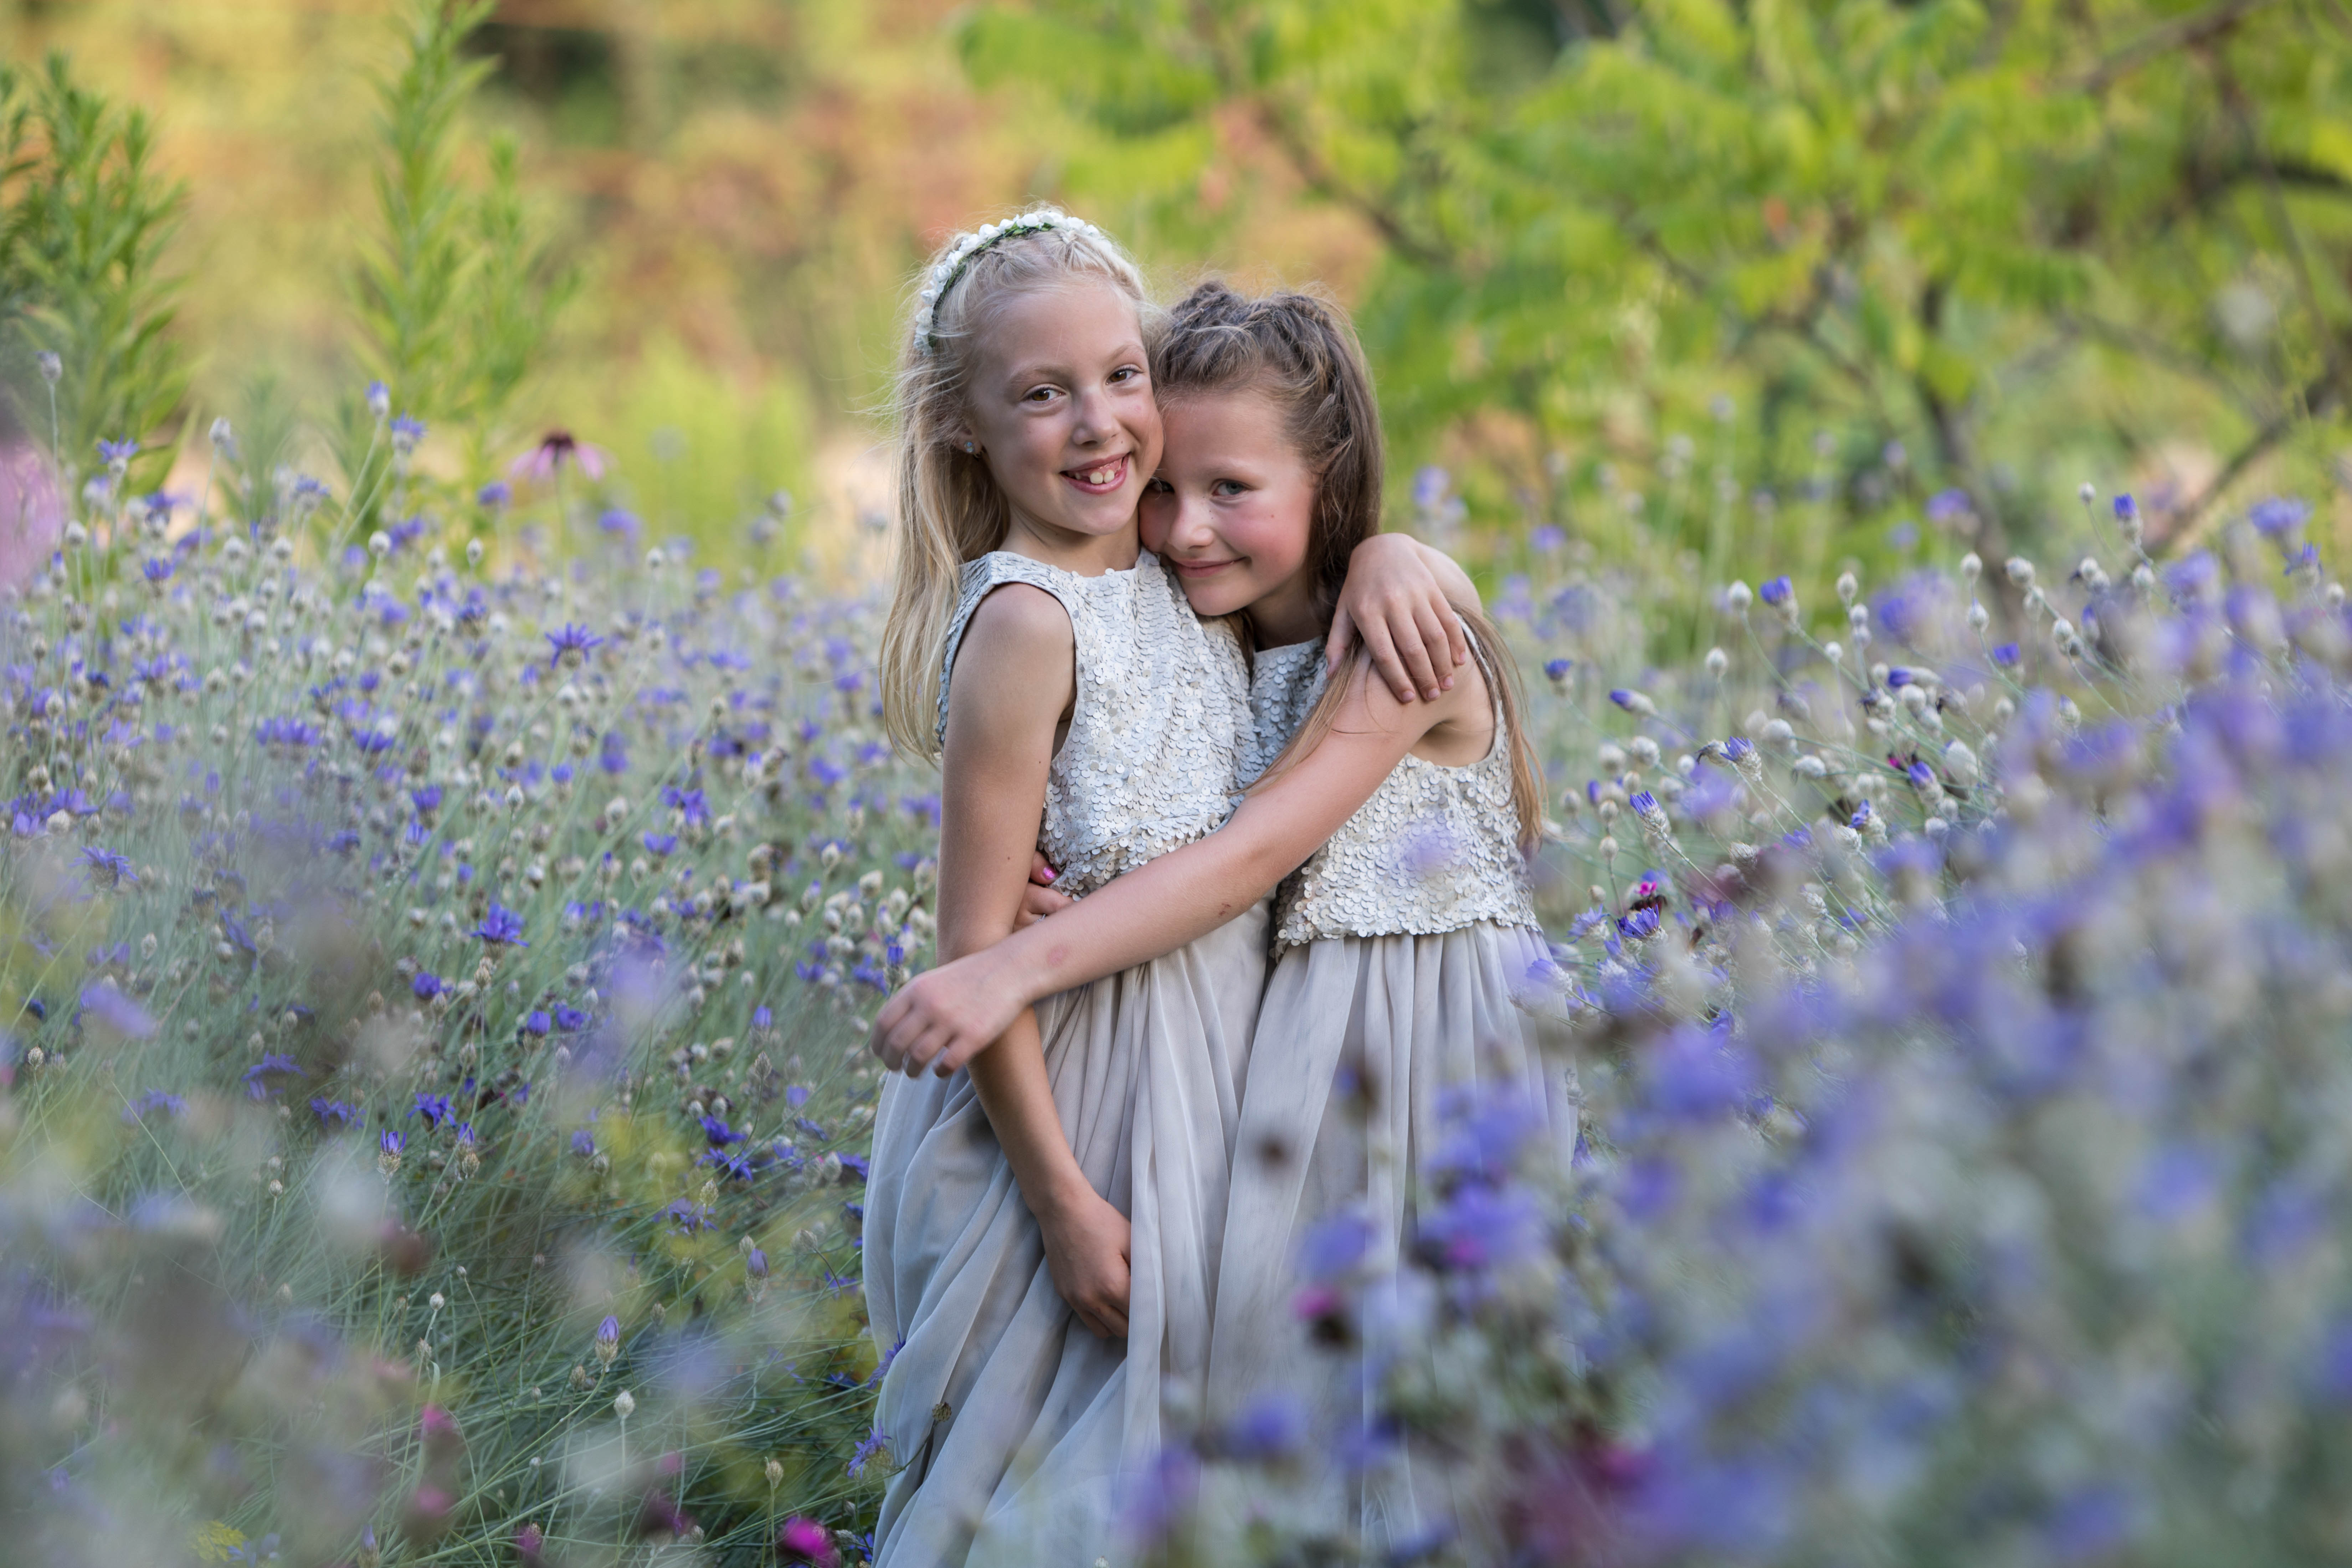 Flower girl photograph by Jack Cook